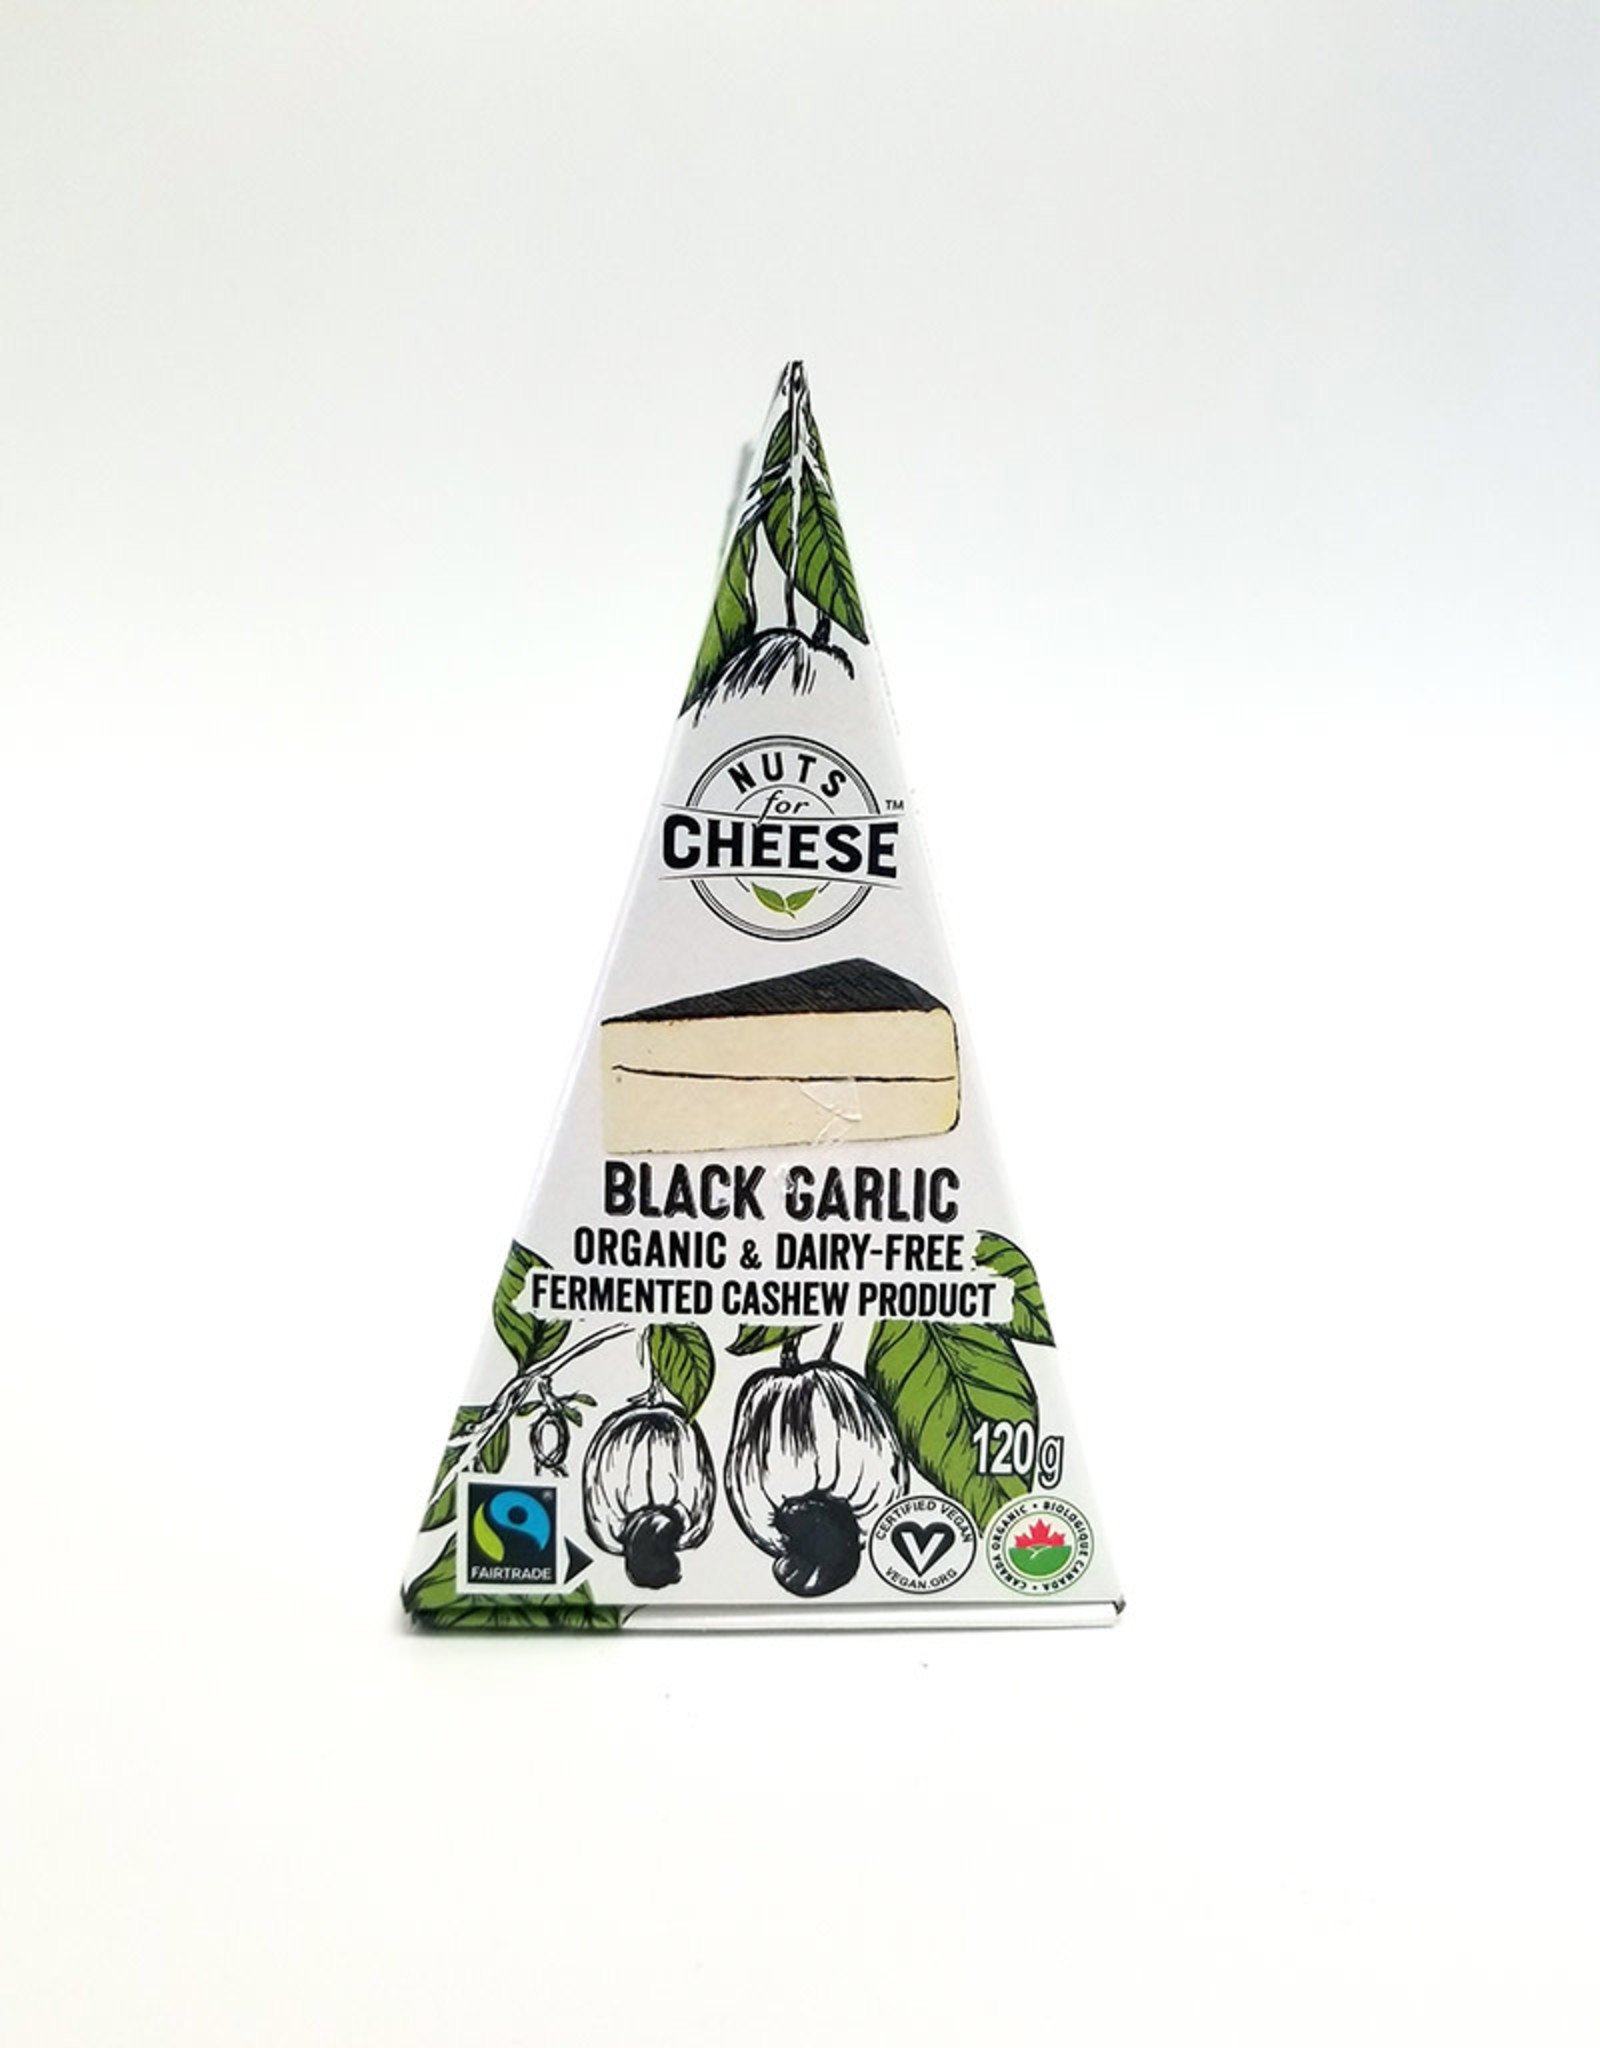 Nuts for Cheese Nuts For Cheese - Black Garlic (120g)